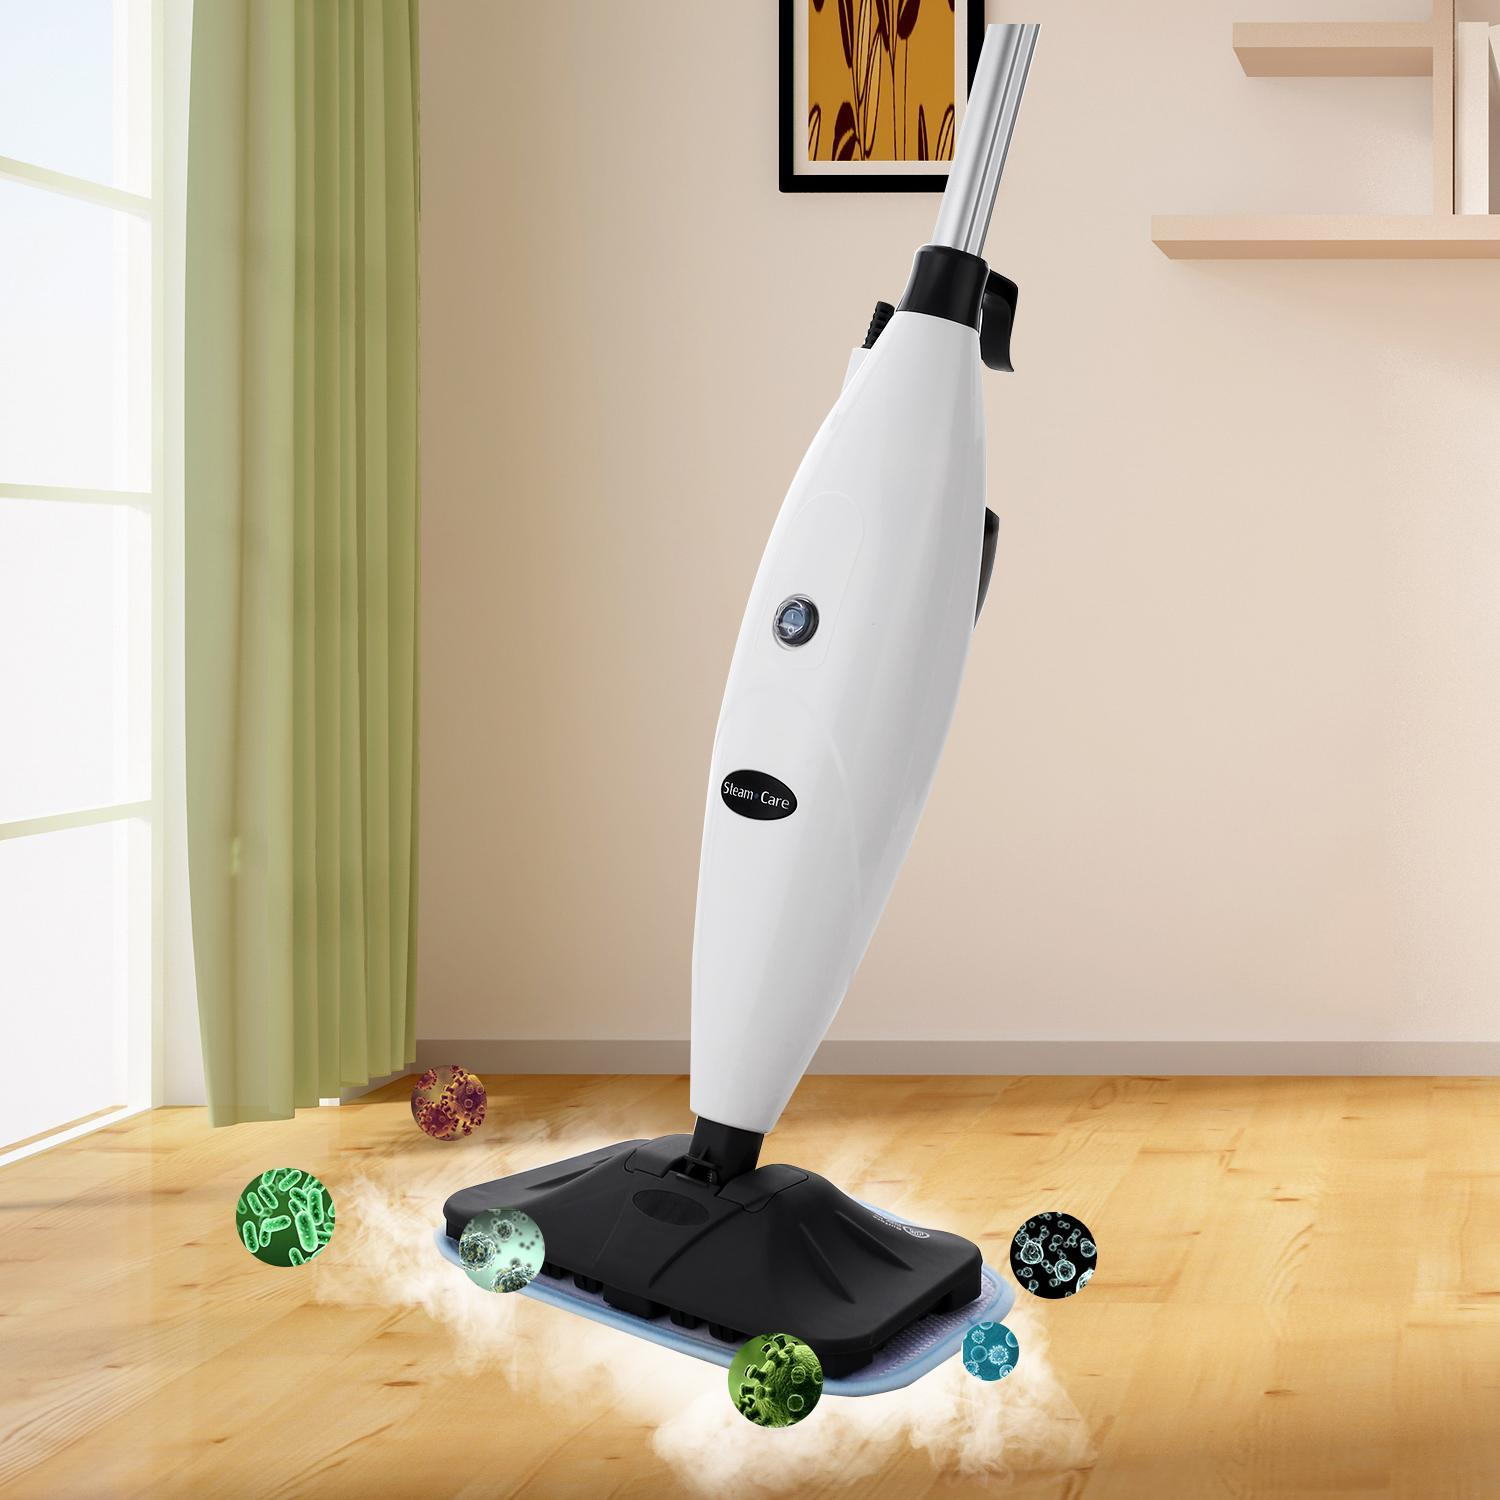 Home Smart Steam Mop Powerfresh Electric Floor Cleaner Sanitize Scrubber